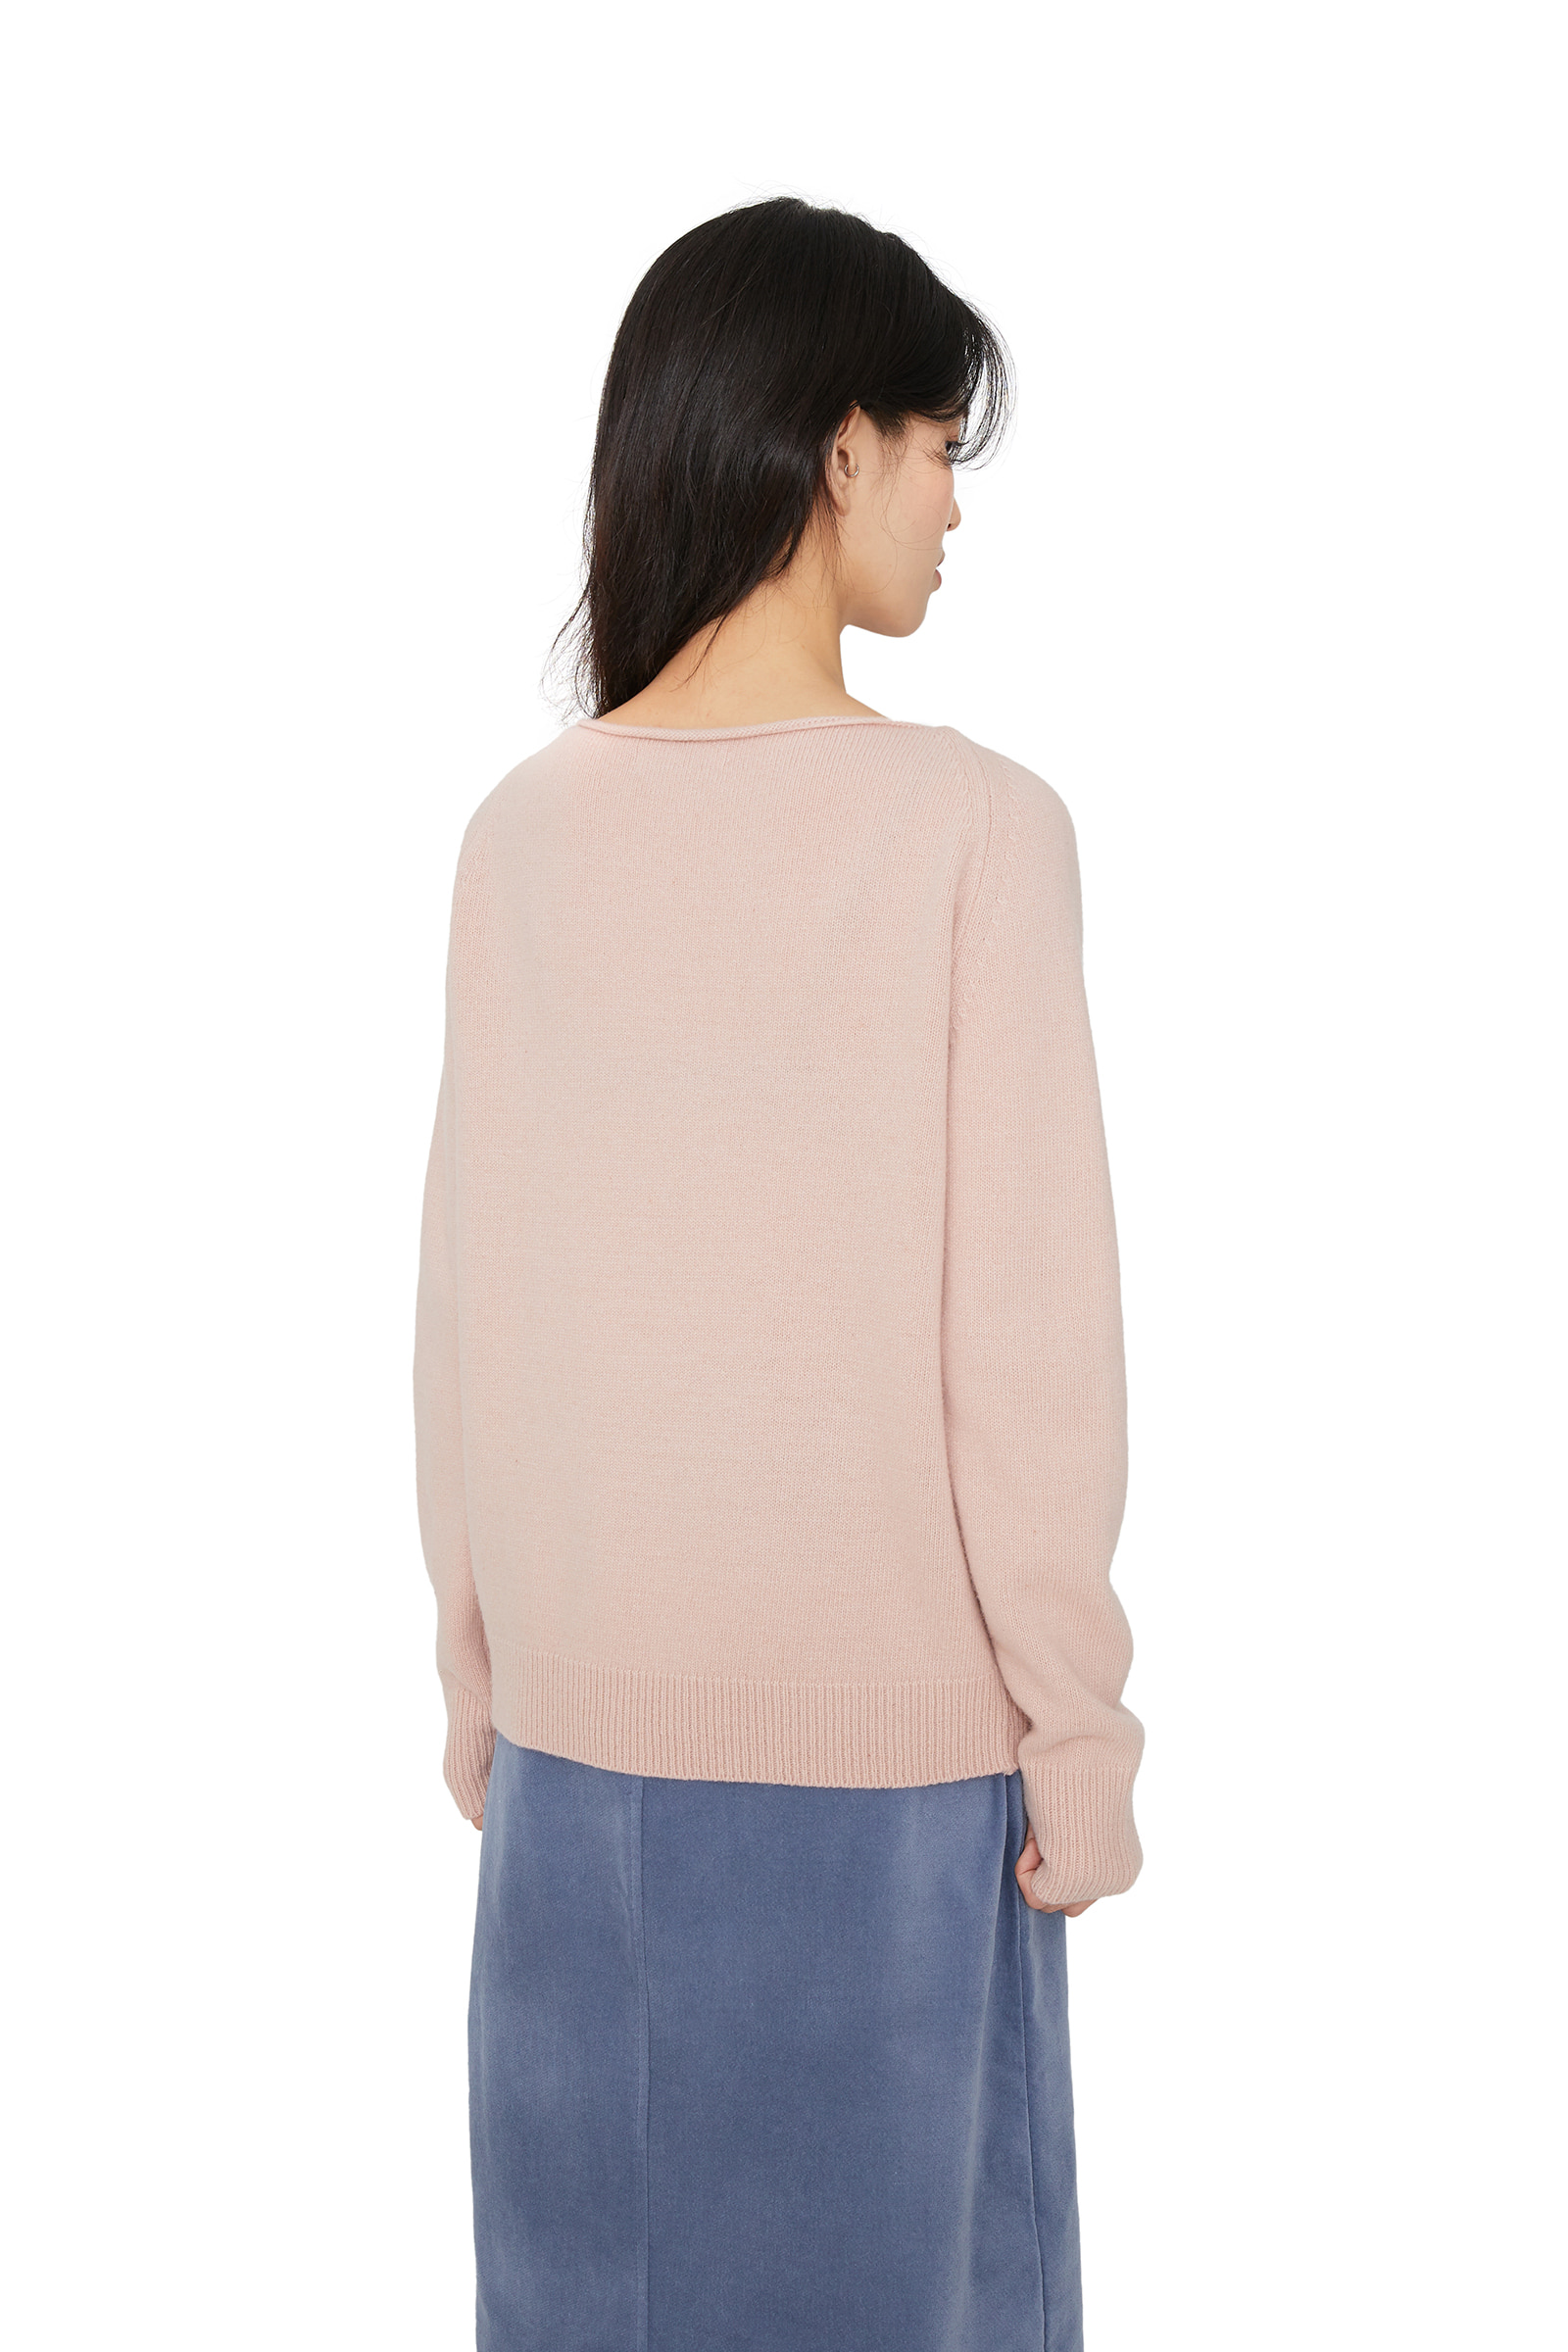 Laurent cashmere boatneck knit